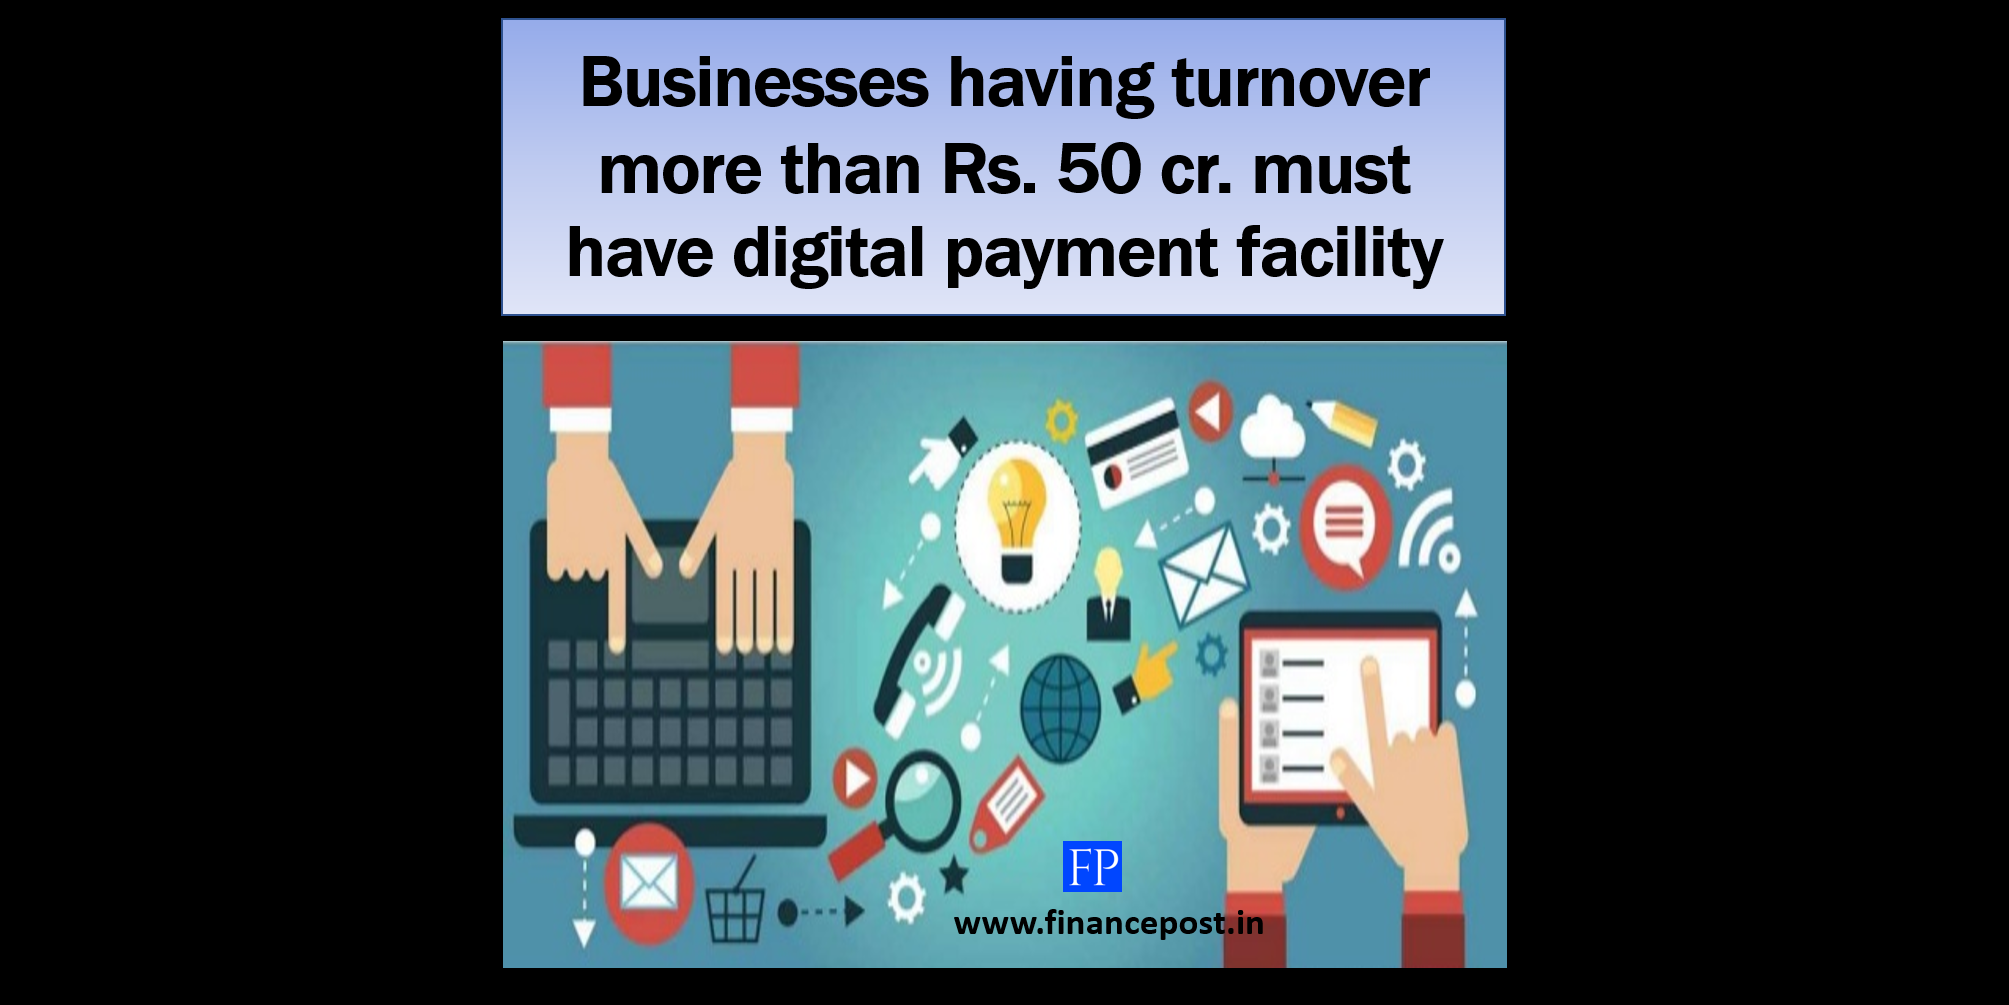 Businesses having turnover more than Rs. 50 cr. must have digital payment facility